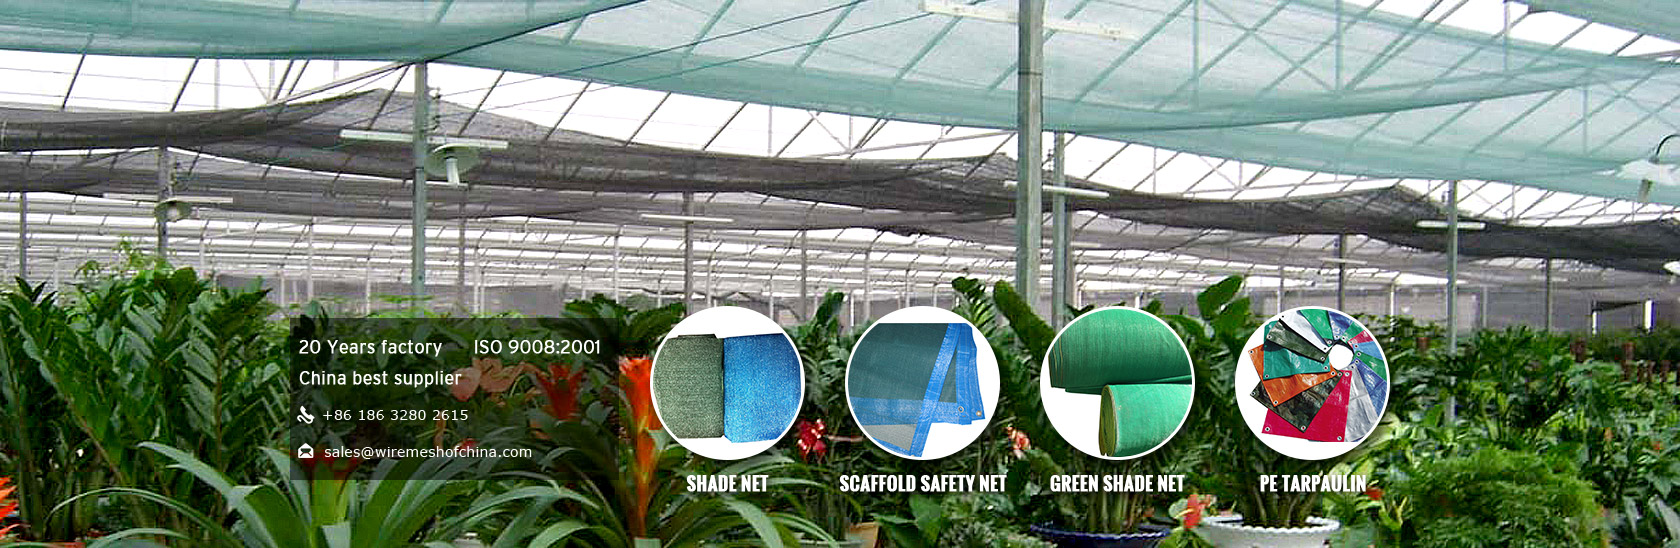 Agriculture Netting, Fiberglass Mesh Series, Security Fence Series